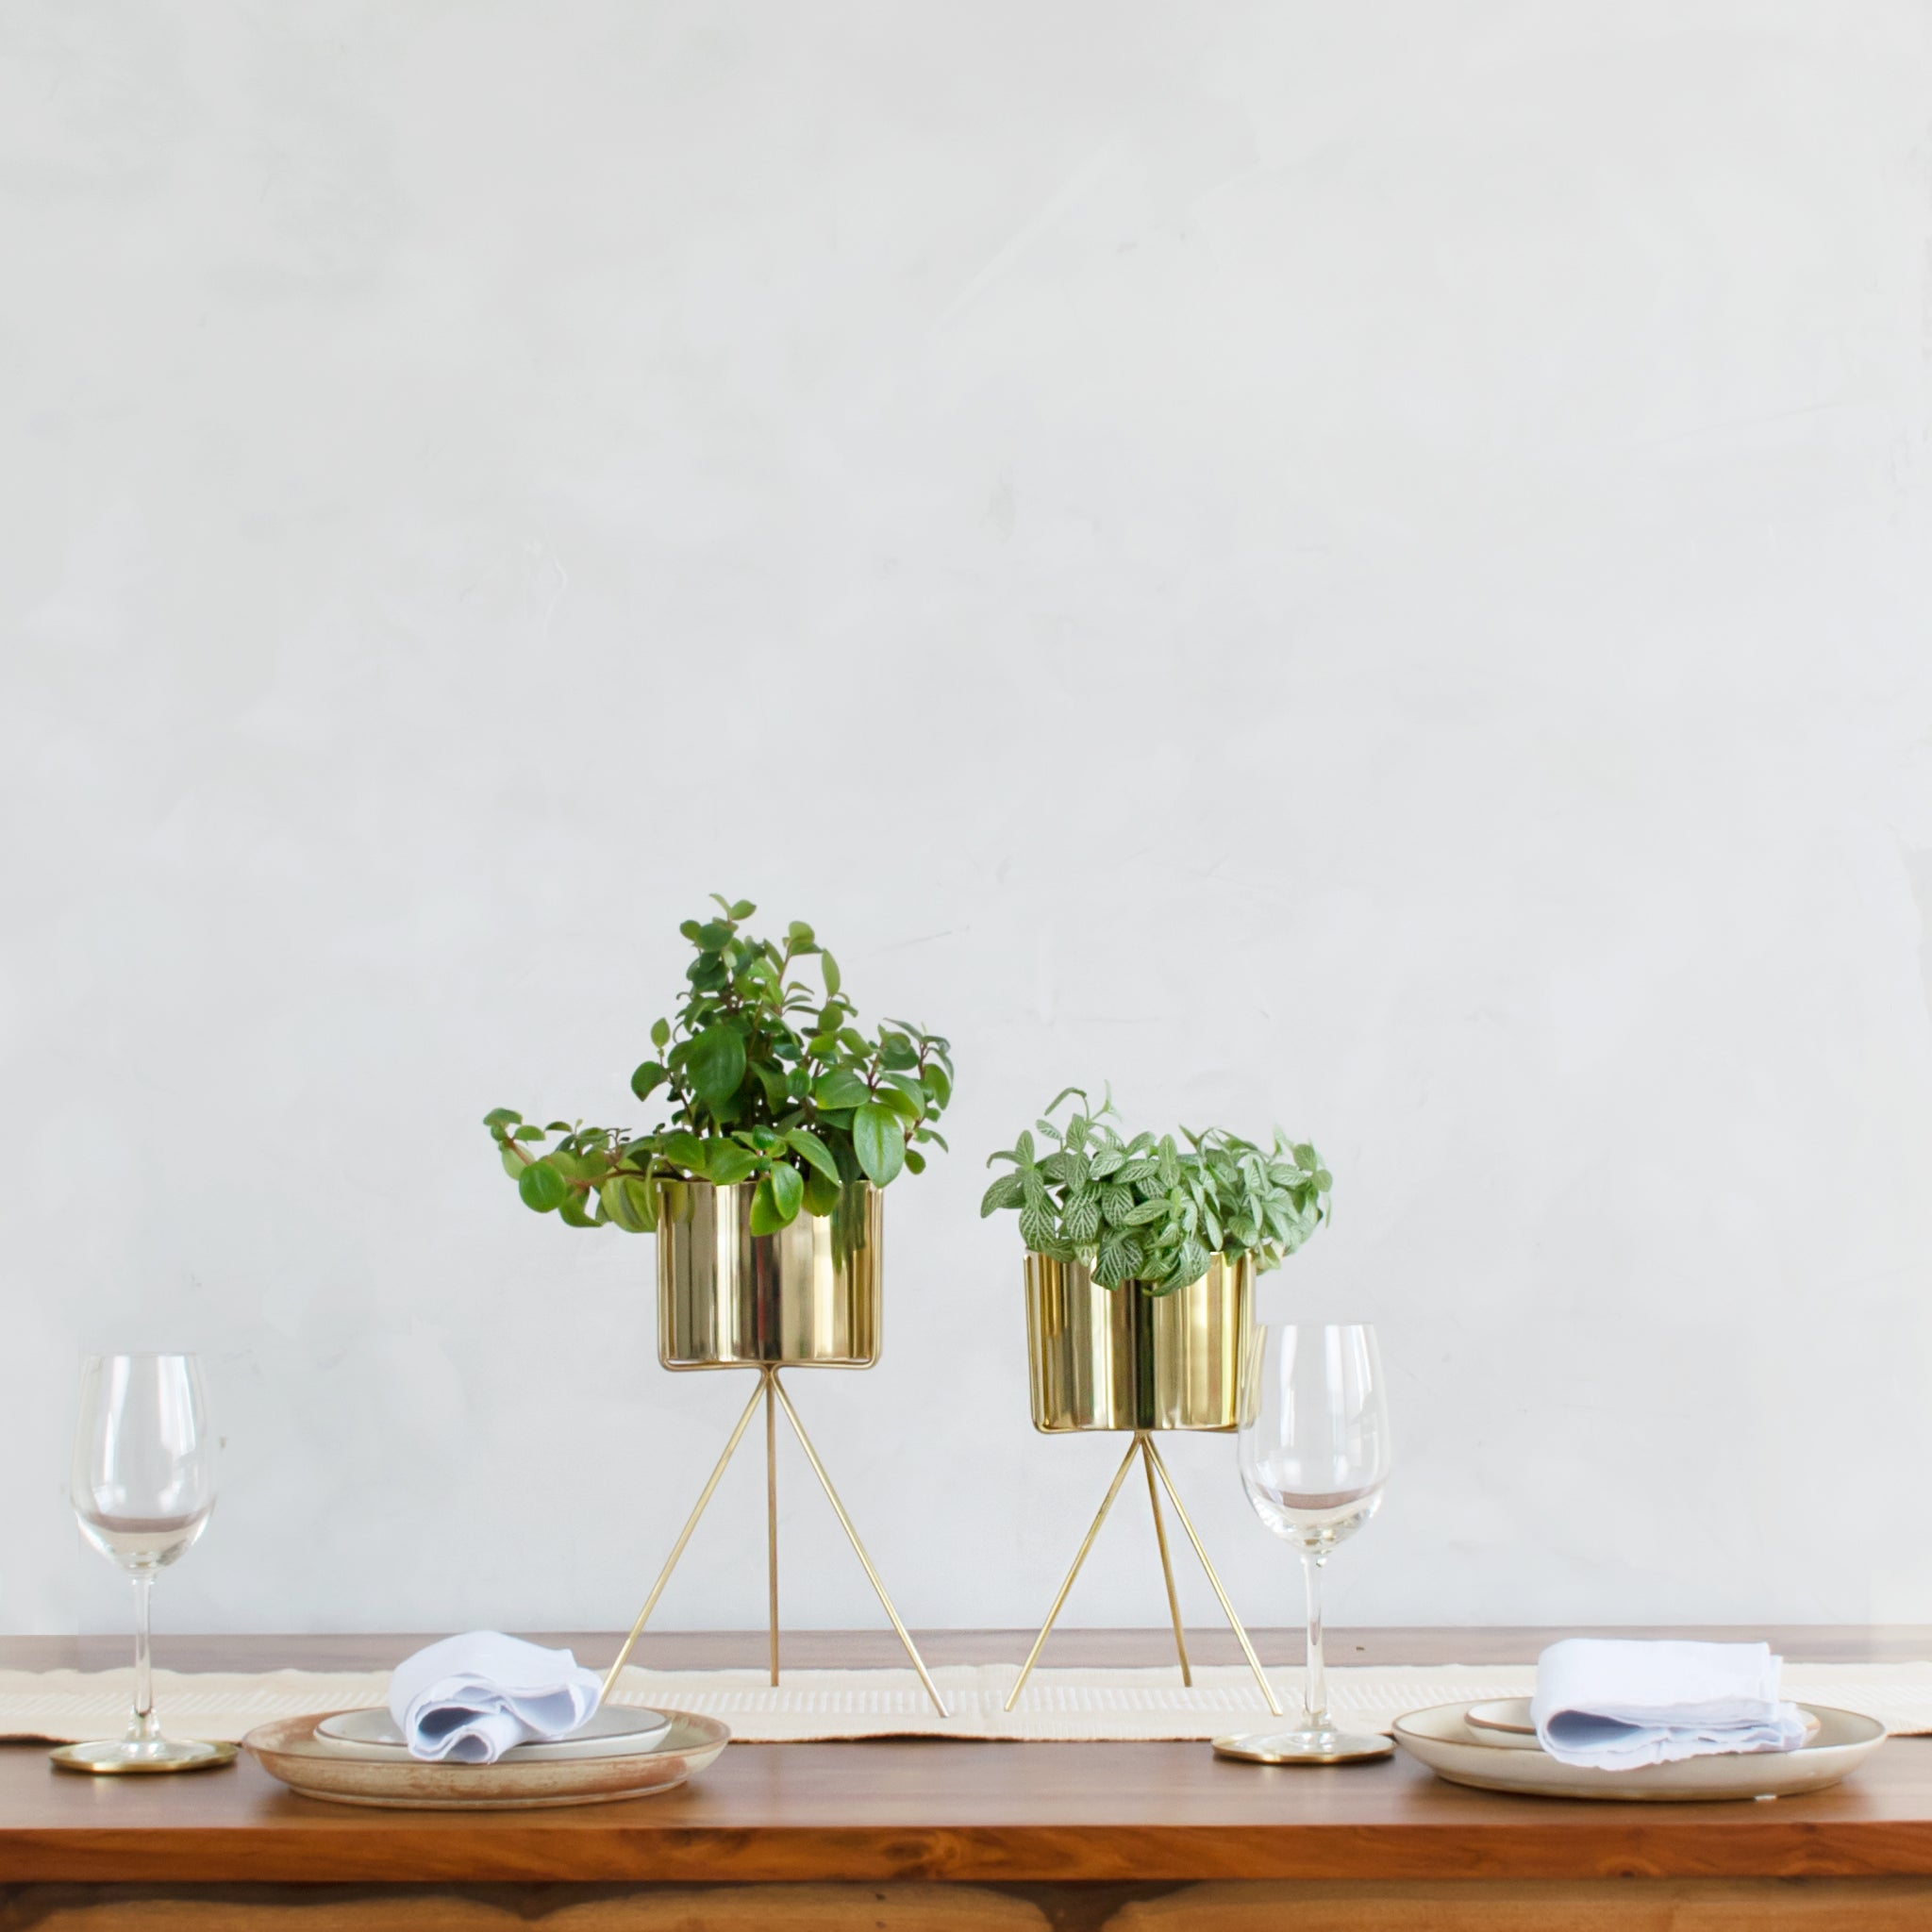 Two gold small table top planters with gold stands on a table with plates and wine glass